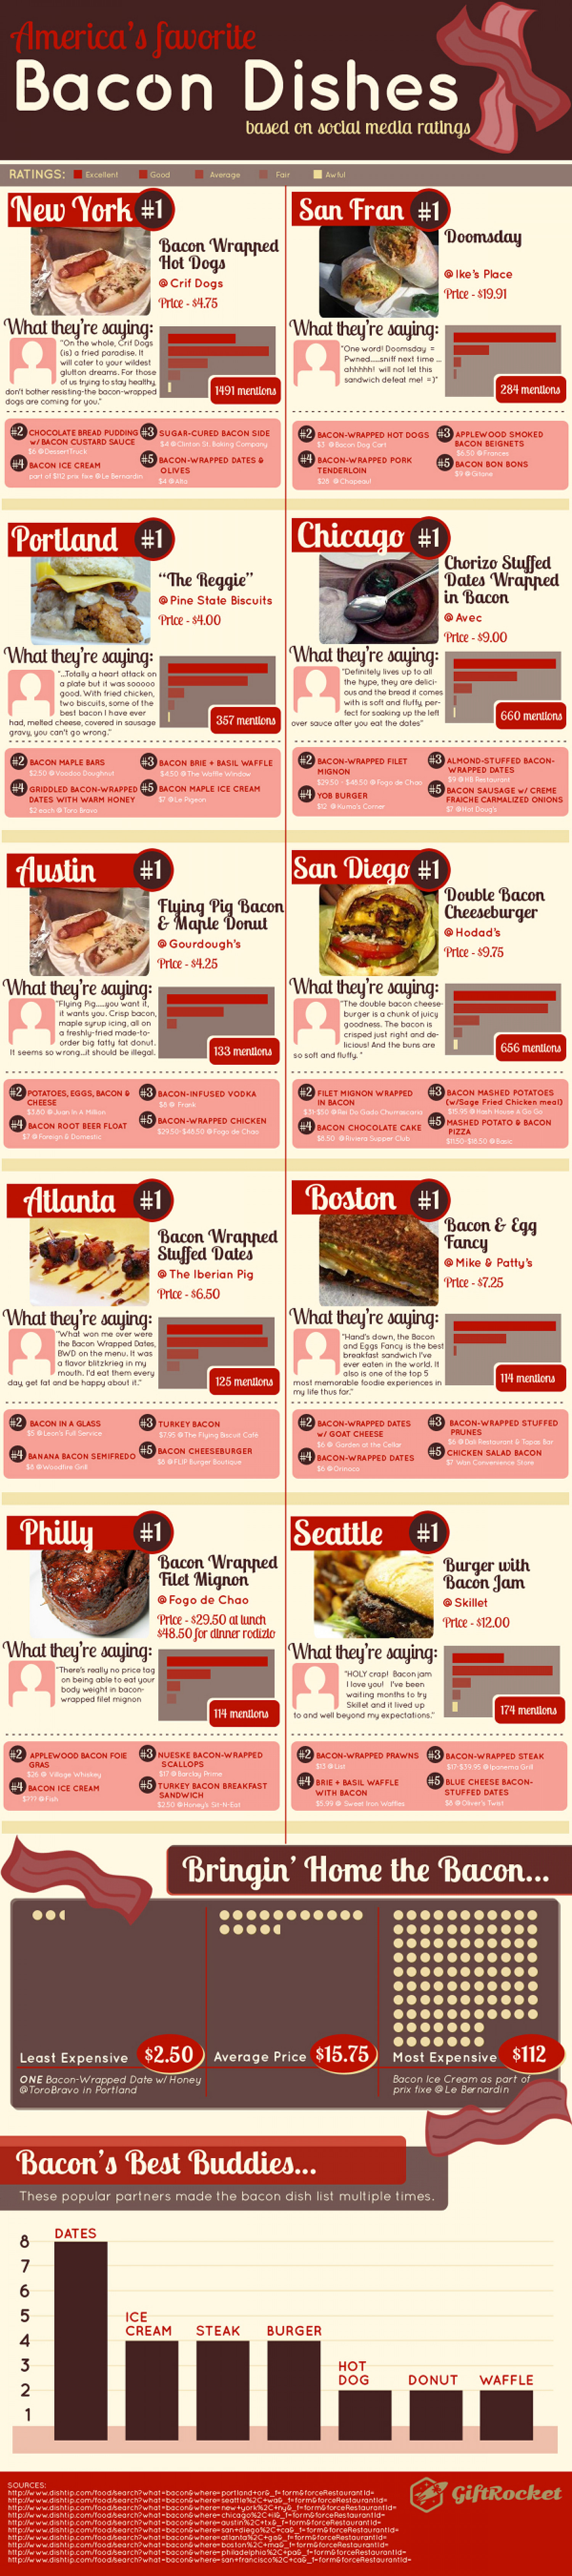 The Best Bacon Dishes in the USA Based on Social Media Ratings Infographic